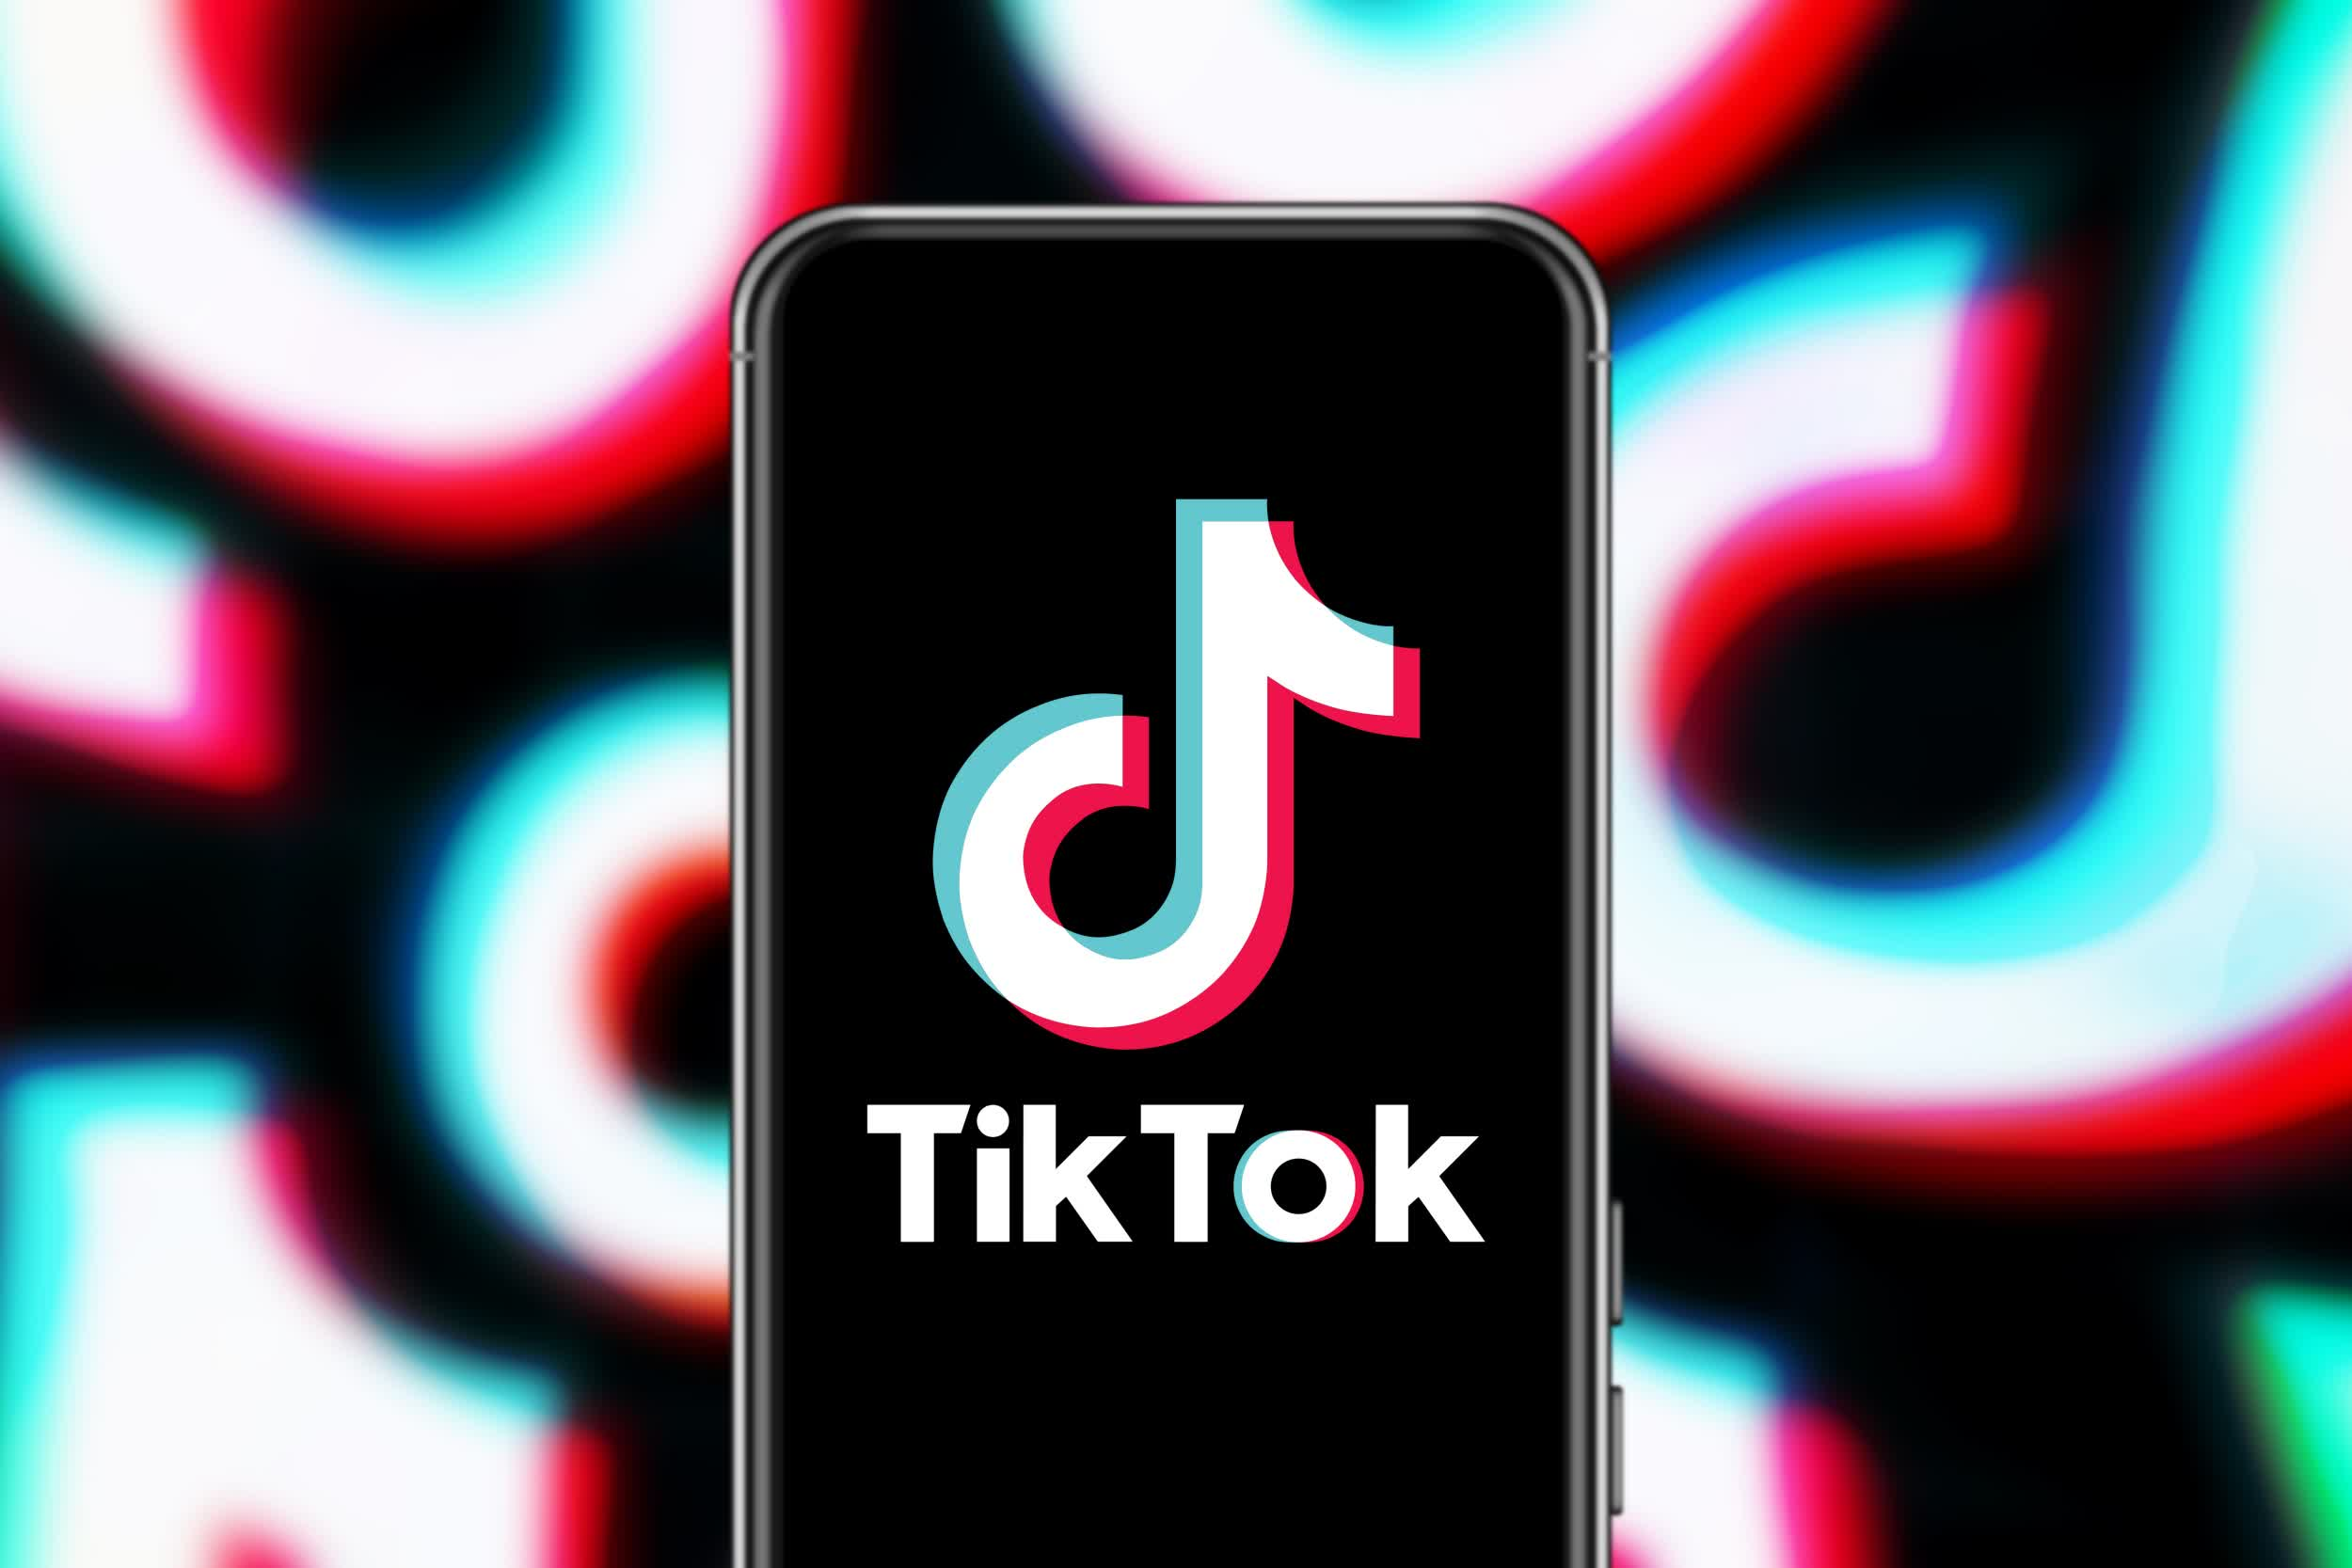 TikTok is approaching the issue of bullying from both sides